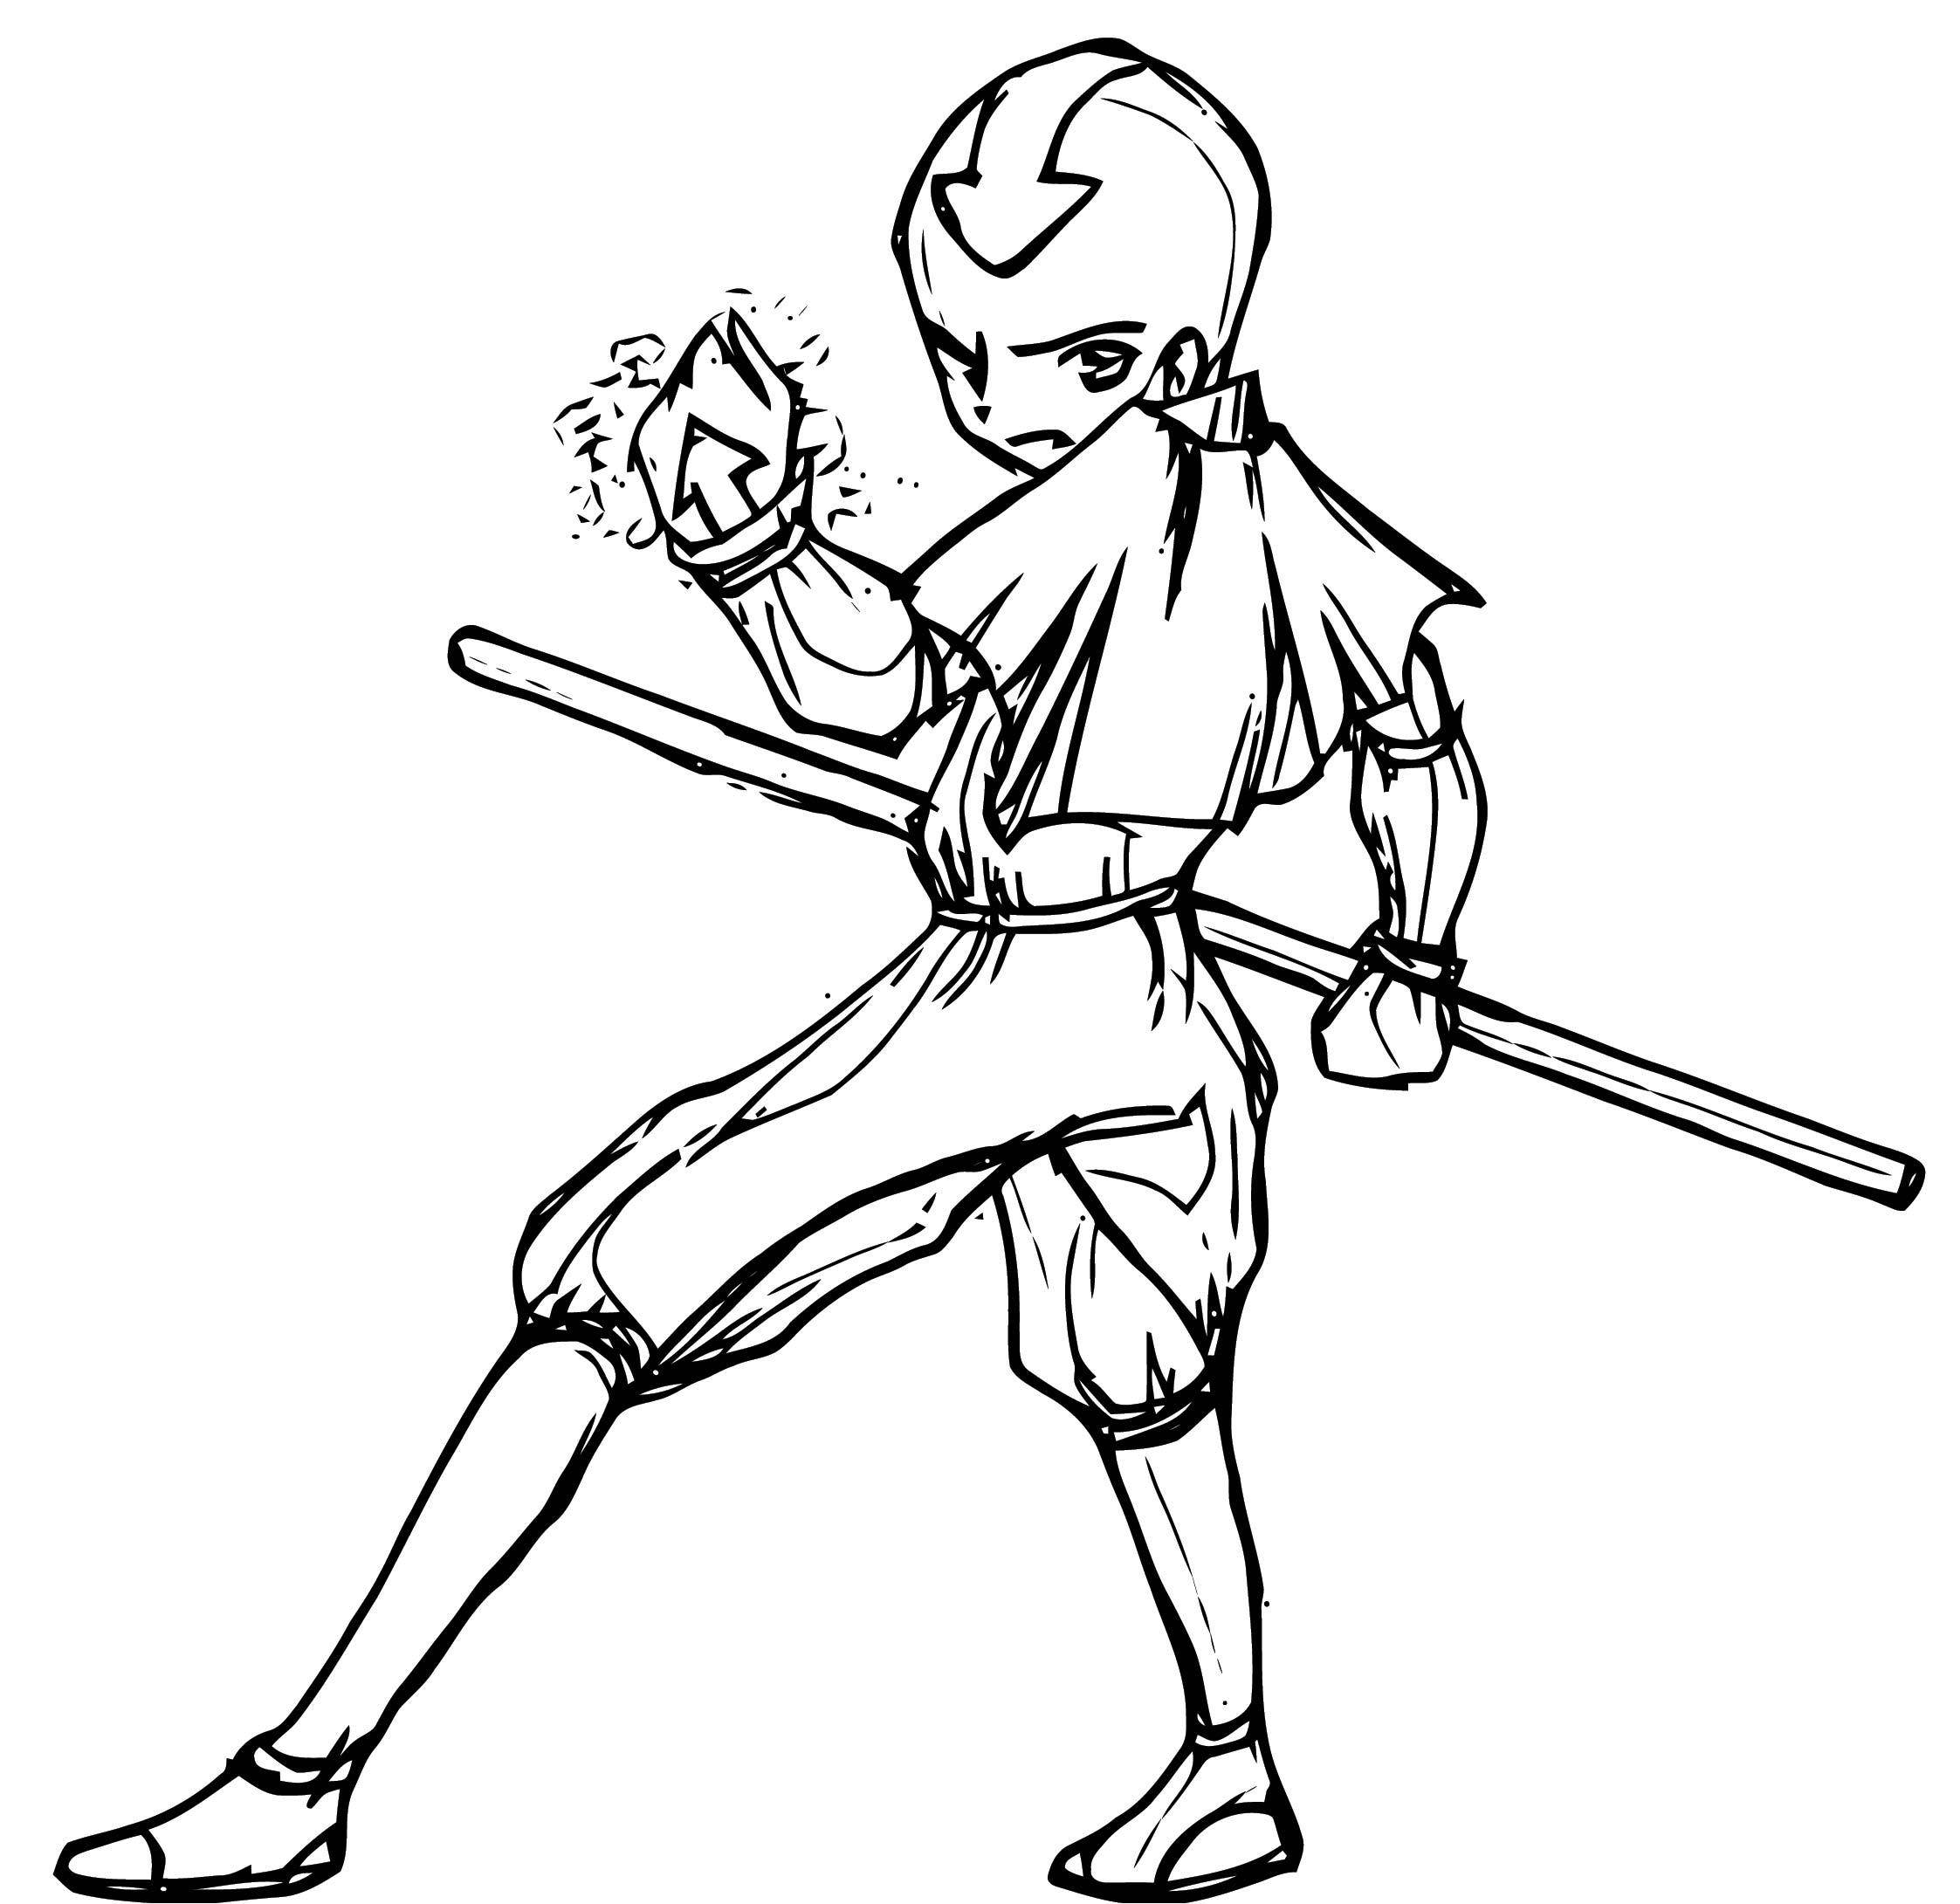 Avatar Aang Coloring Page: Avatar The Last Airbender Aang Candygirlxd Avatar Aang